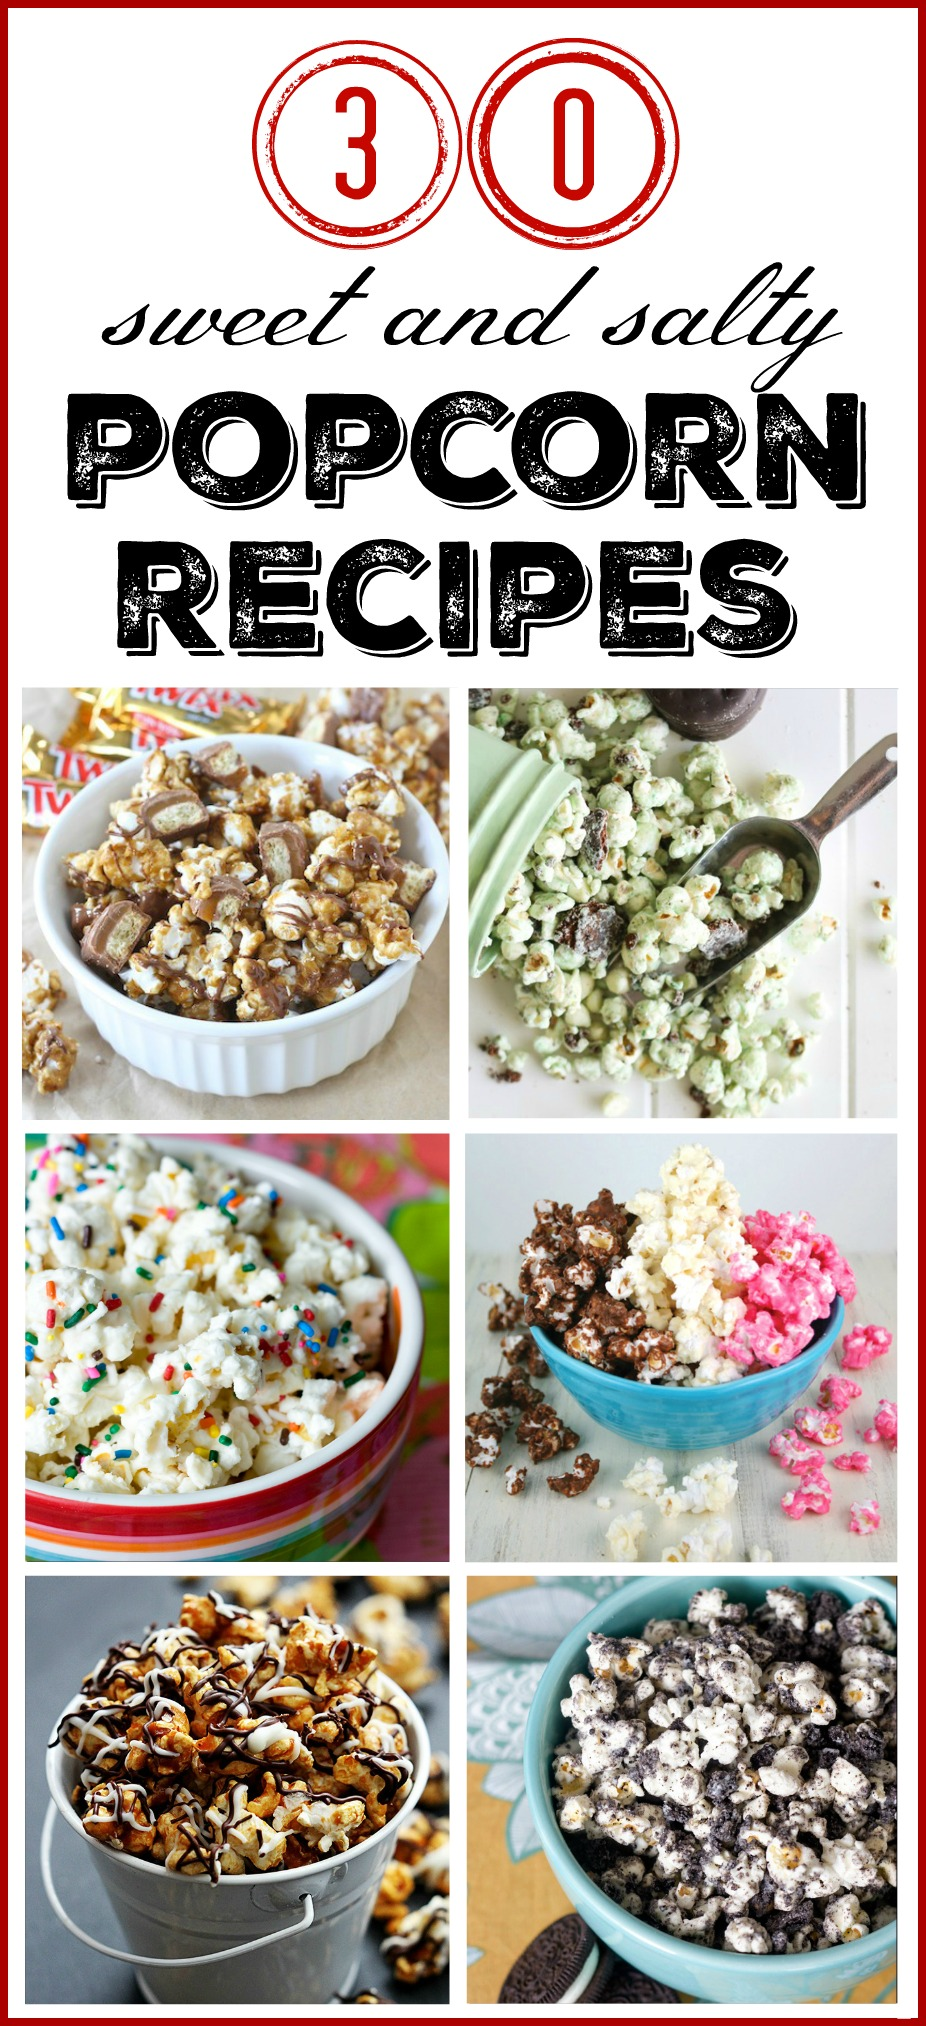 30 Sweet and Salty Popcorn Recipes to Try.  via @mymommystyle